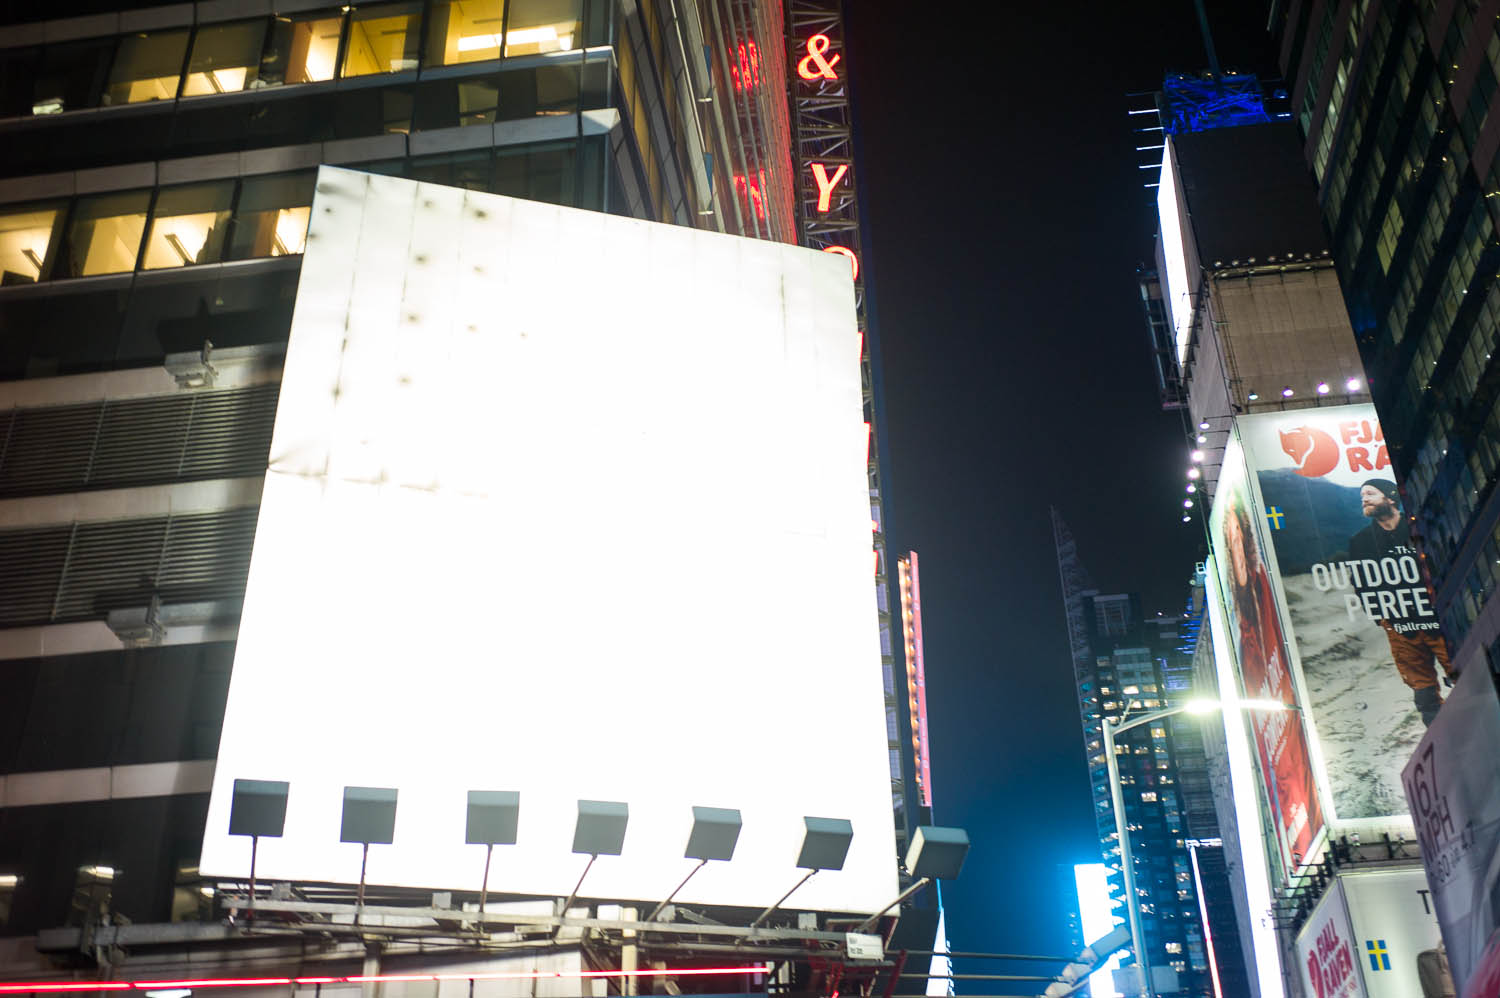 An empty billboard in Times Square